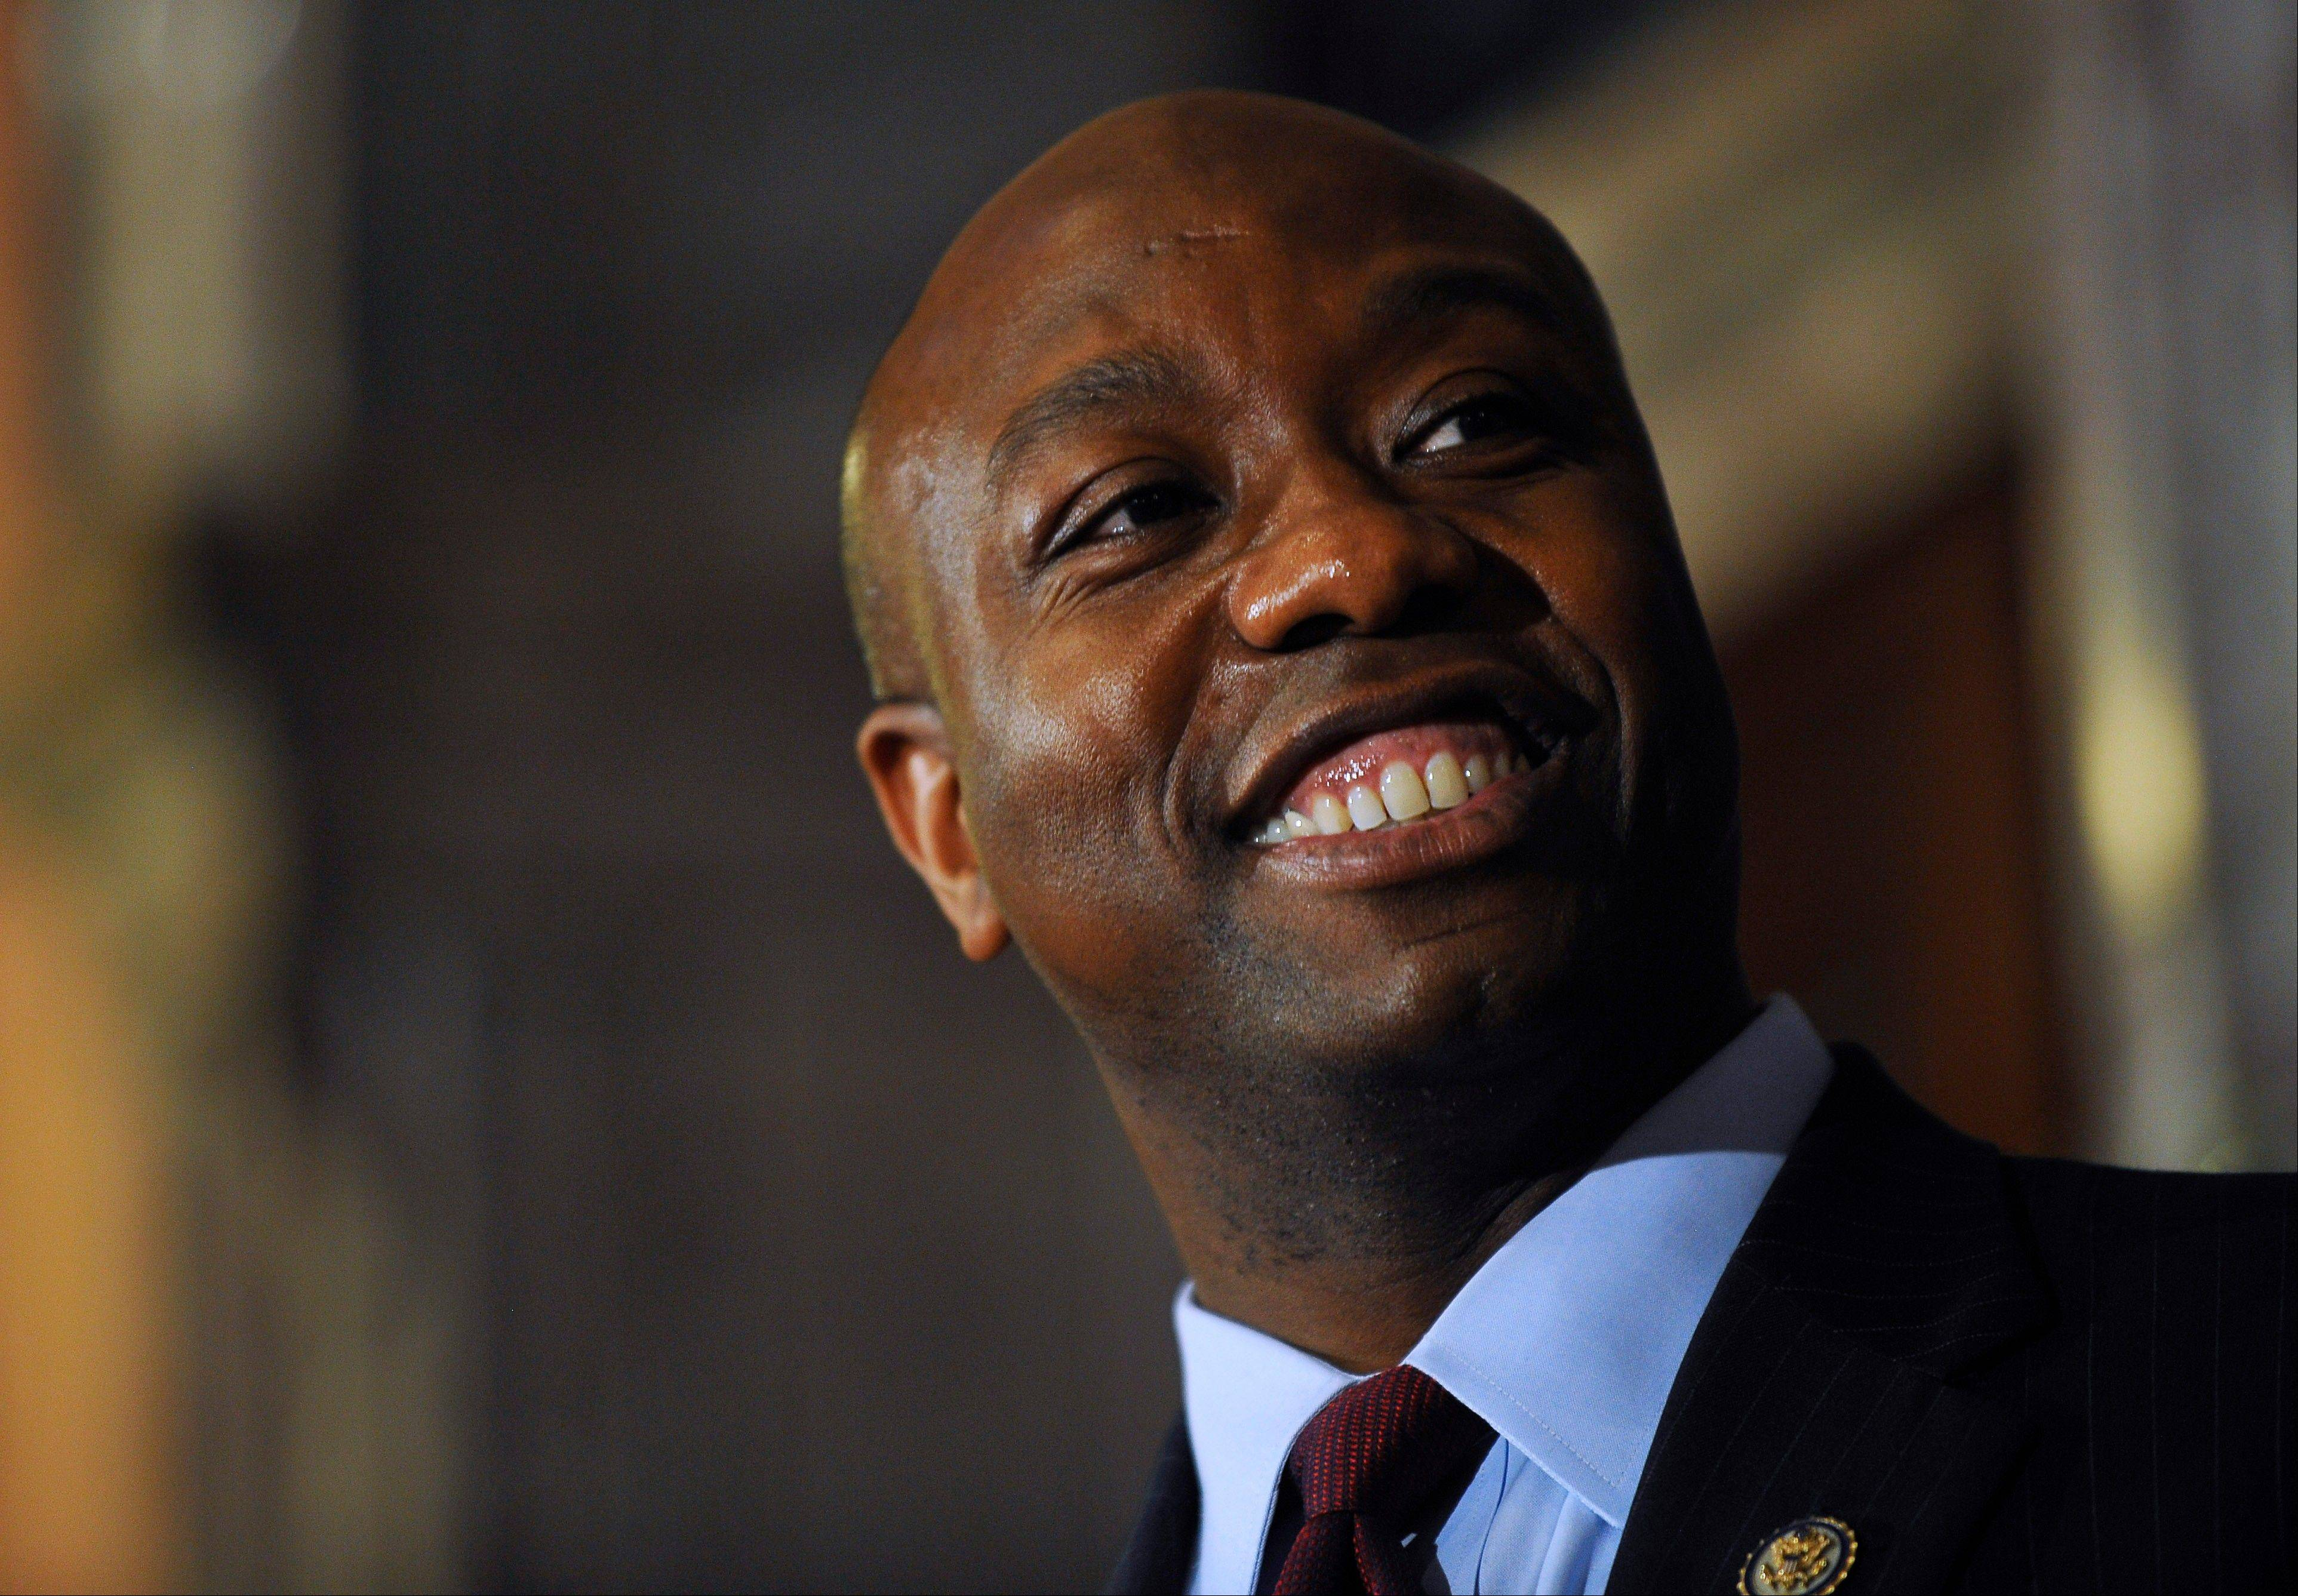 U.S. Rep. Tim Scott smiles during a press conference announcing him as Jim DeMint�s replacement in the U.S. Senate at the South Carolina Statehouse on Monday, Dec. 17, 2012, in Columbia, S.C. South Carolina Gov. Nikki Haley announced Scott, as Sen. Jim DeMint�s replacement, making him the only black Republican in Congress and the South�s first black Republican senator since Reconstruction.